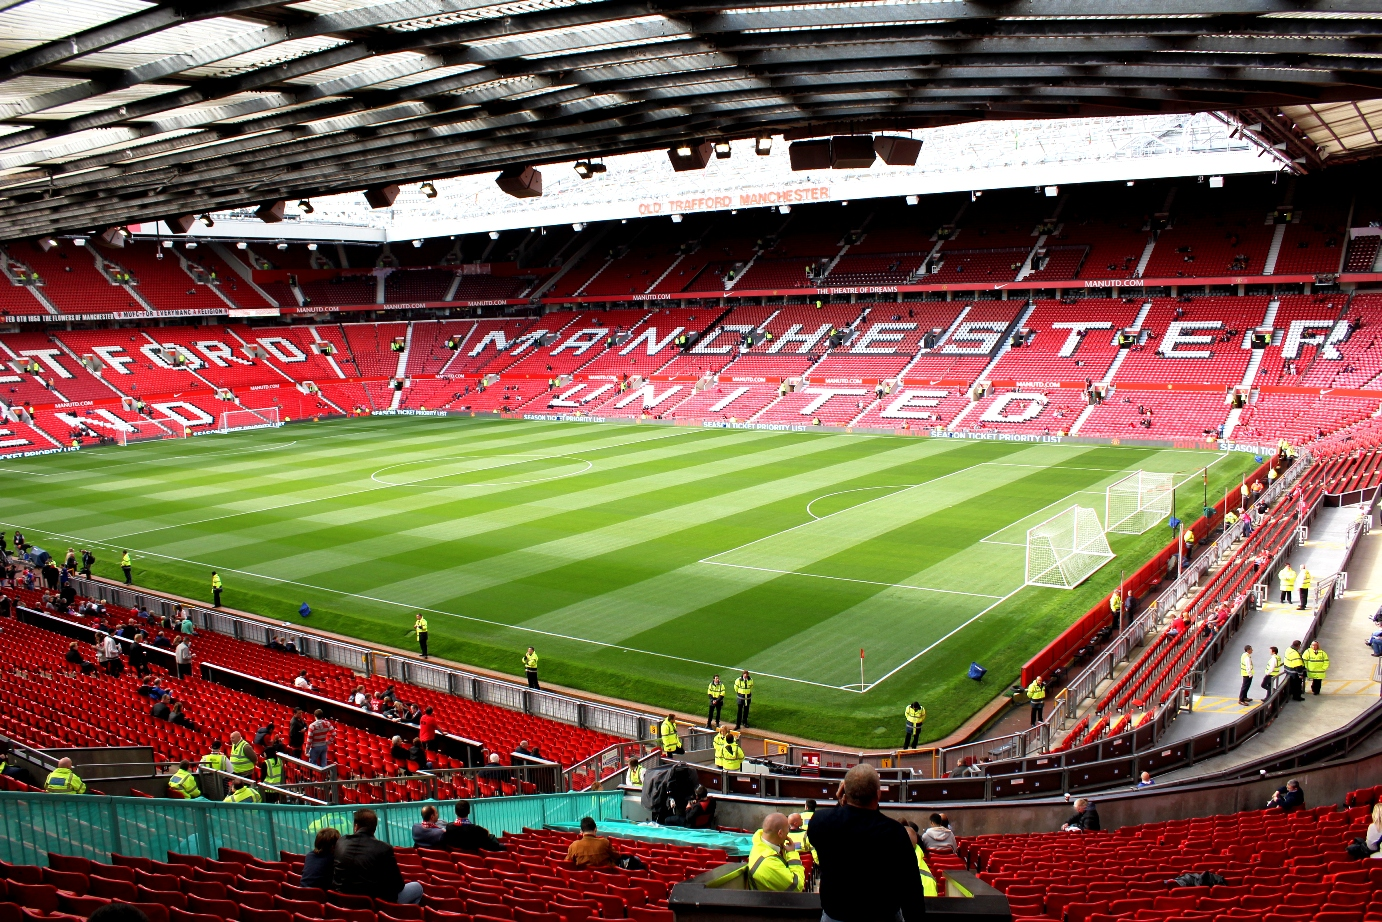 yows, the journey of: euforia nonton bola di Old Trafford